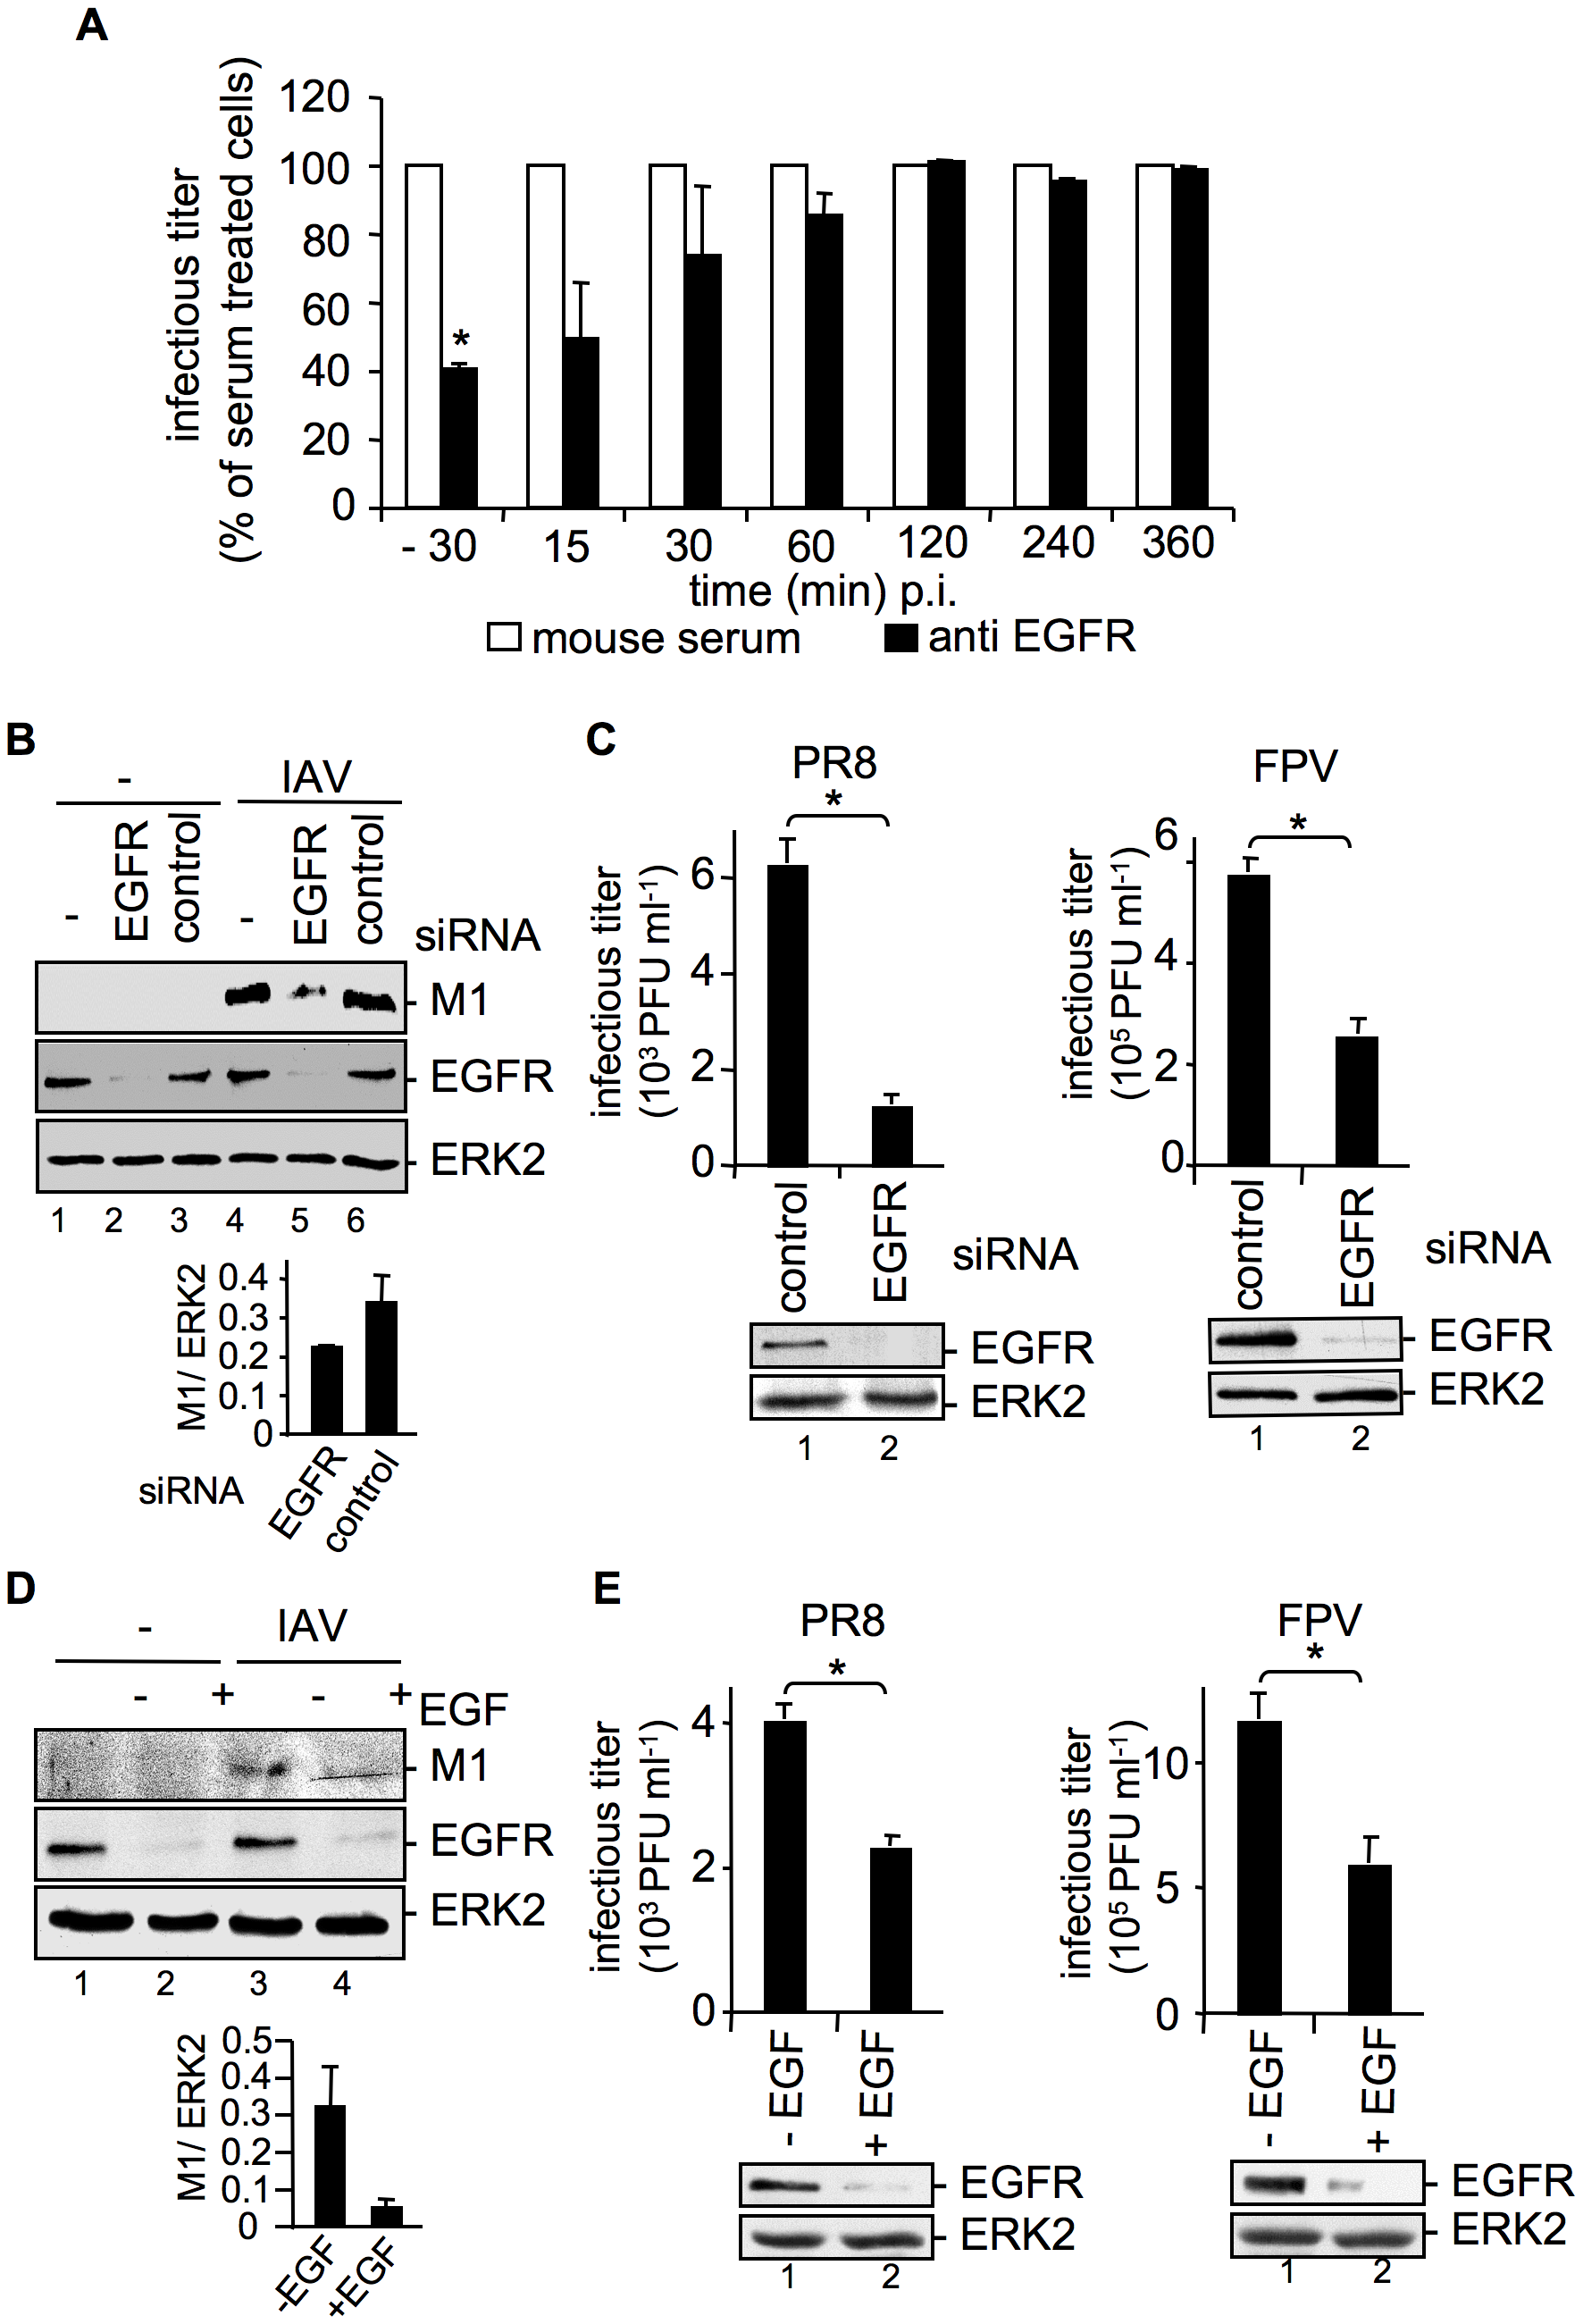 EGFR knock-down impairs efficient uptake of IAV into A549 cells.